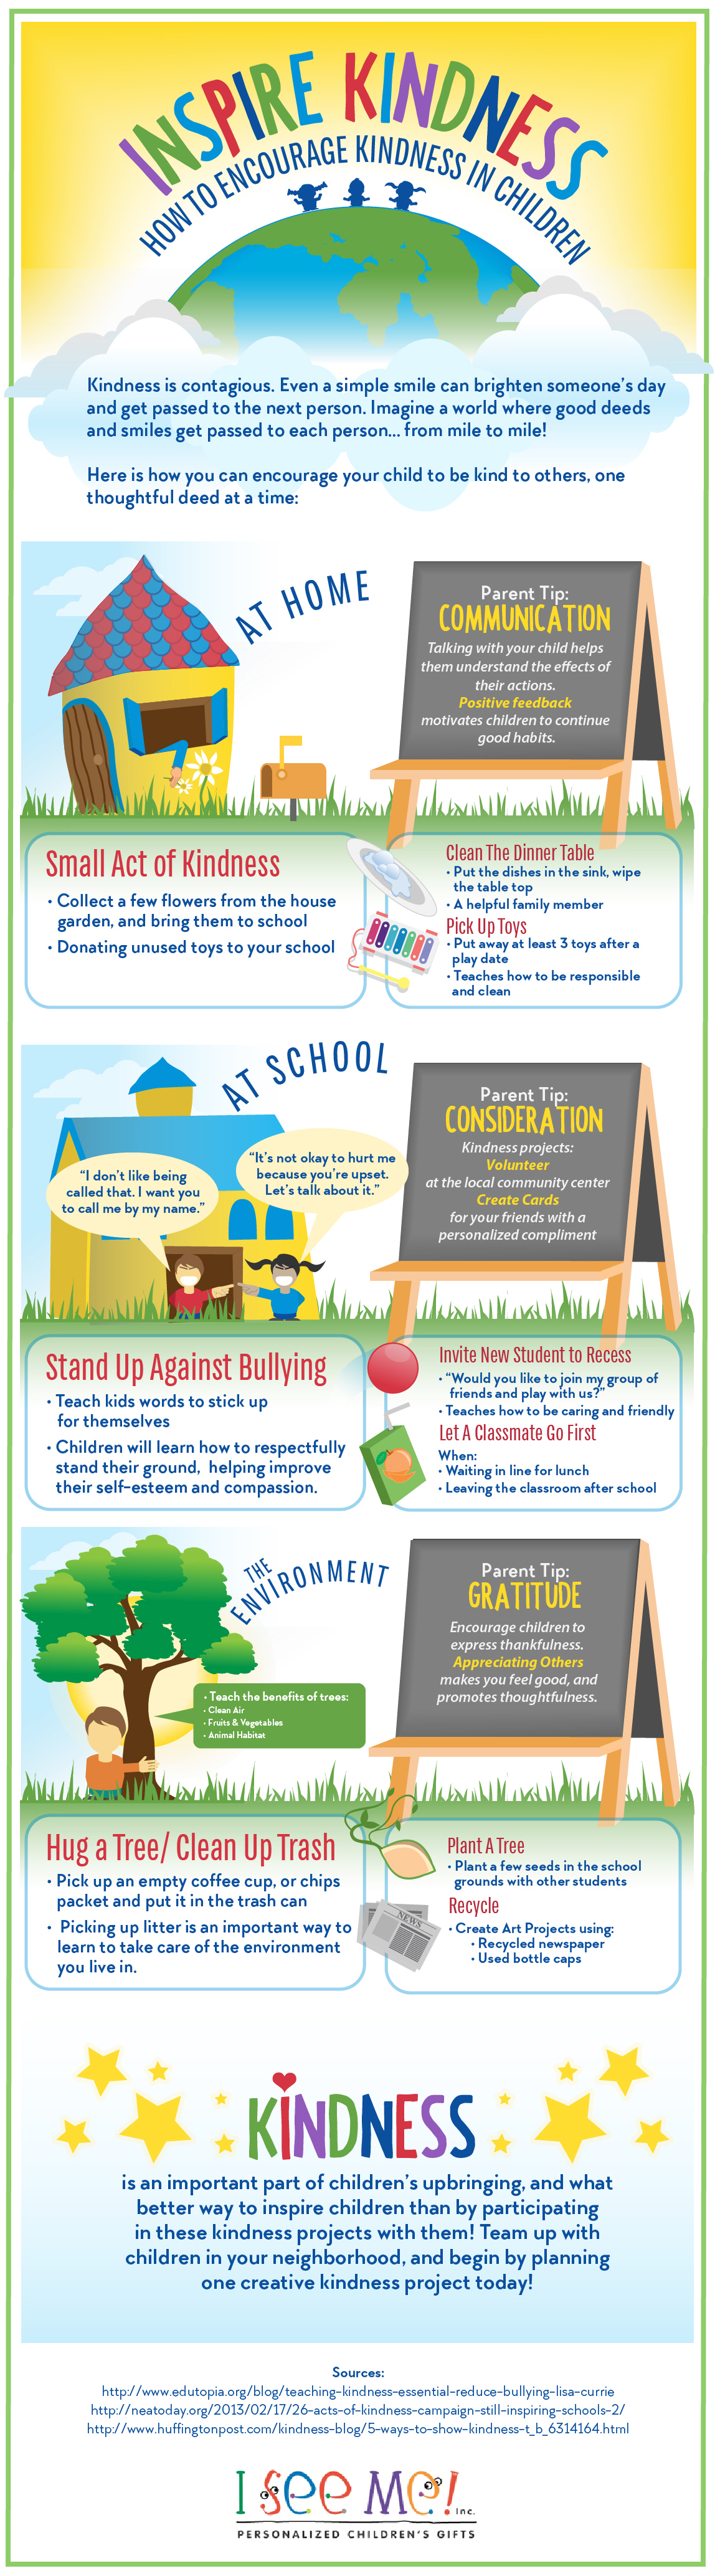 How to Encourage Kindness In Children